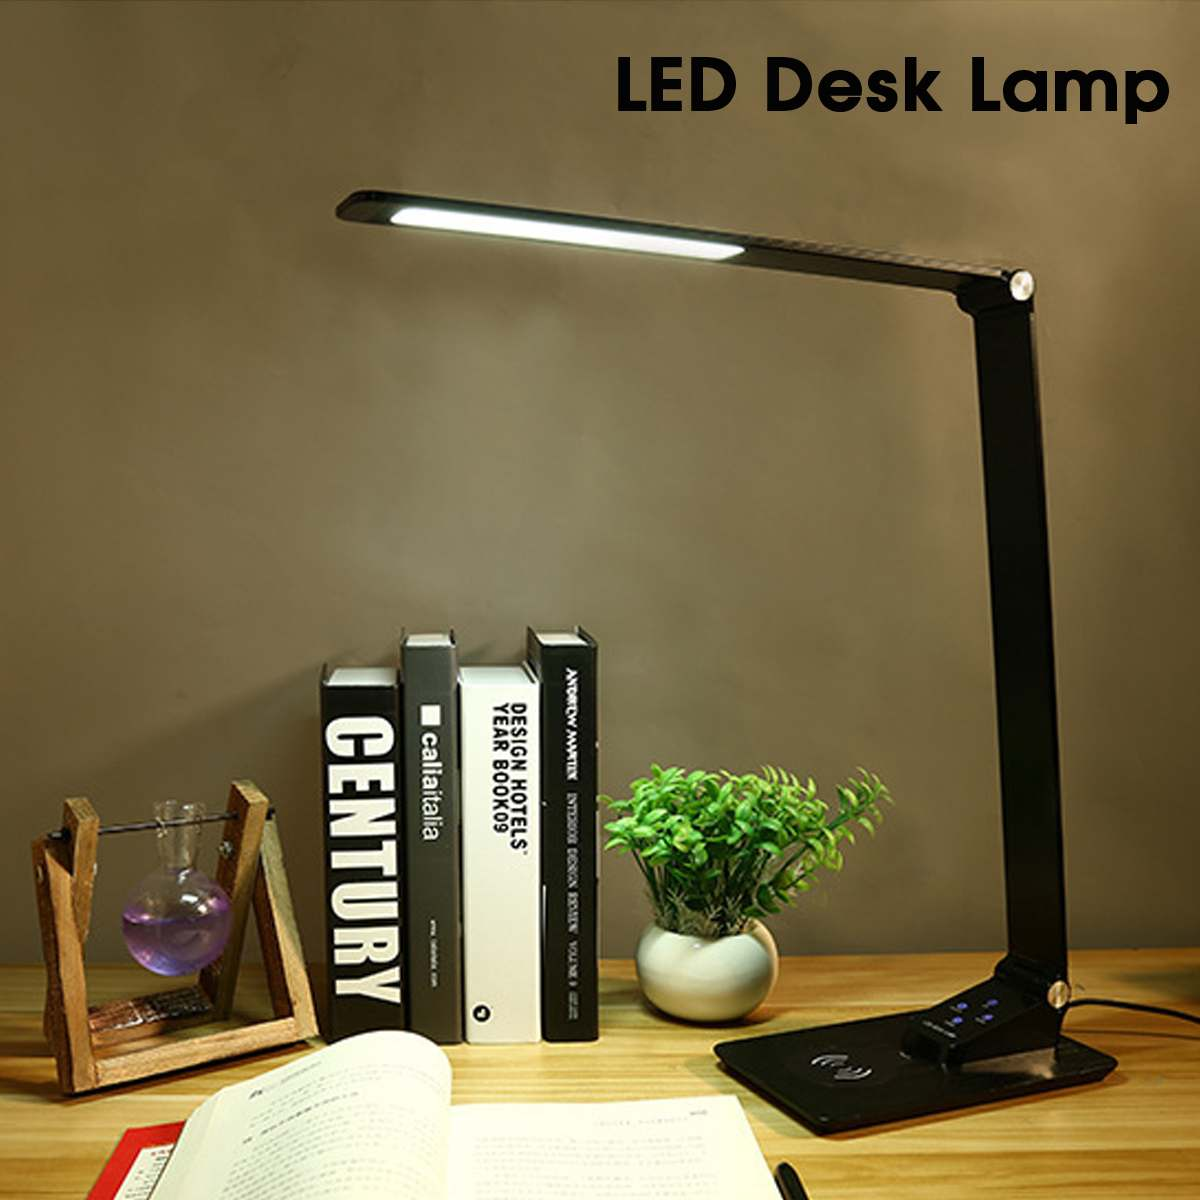 LED Table Lamp Wireless Charger Mobile Phone Foldable Touch Desk Lamp Dimmable Reading Light Table Lamp Digital Display Screen